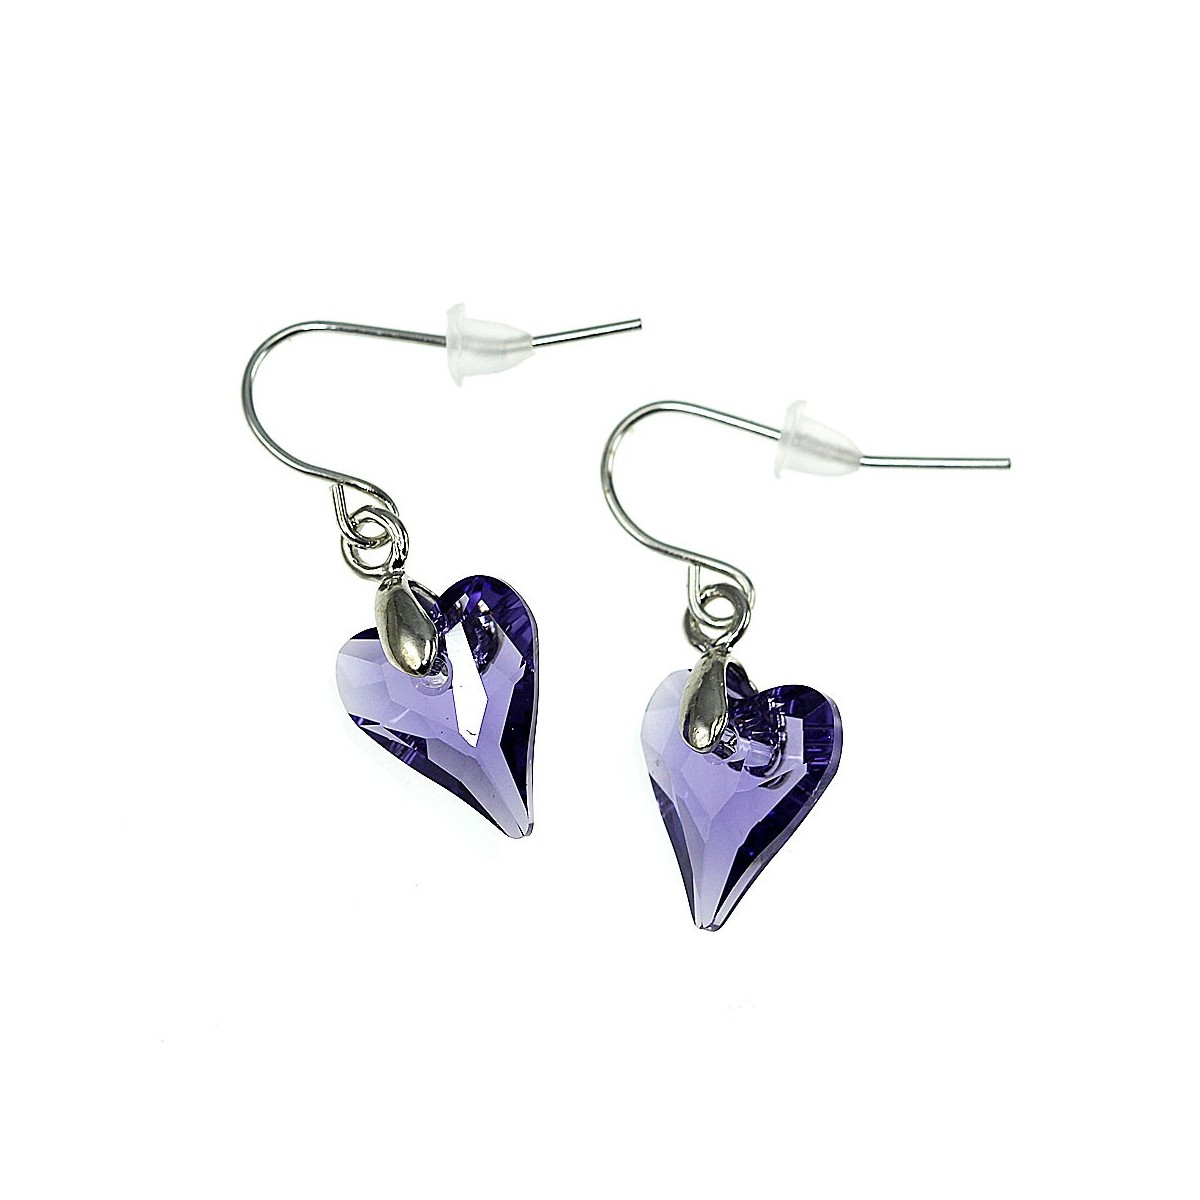 Boucles d'oreilles So Charm ornées d'un coeur violet made with crystal from Swarovski